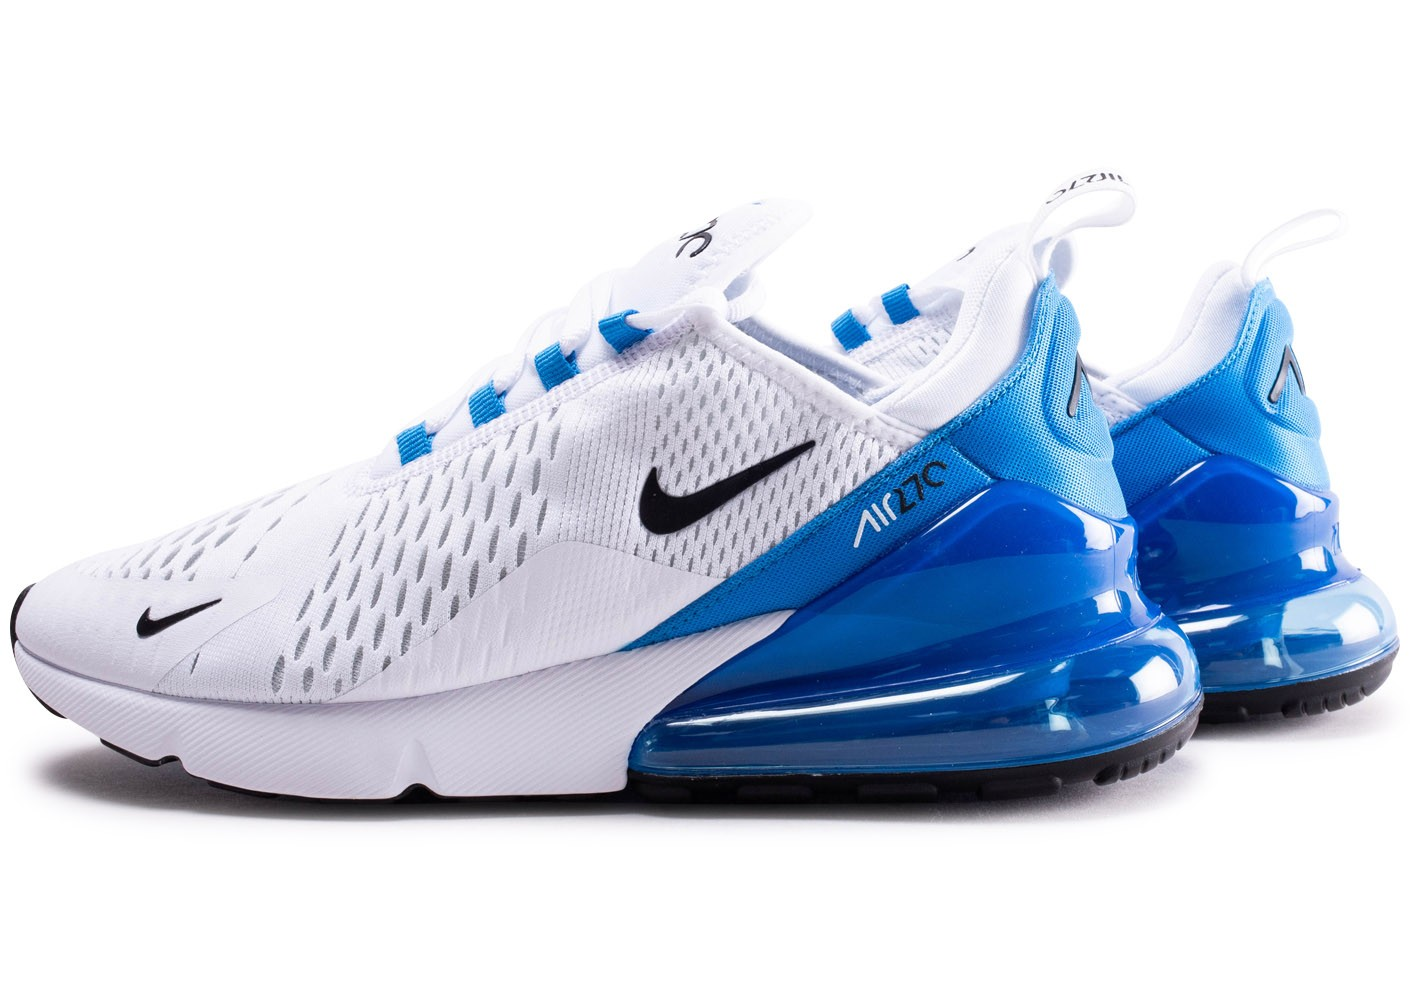 Nike Air Max 270 blanche et bleue - Chaussures Baskets homme ...